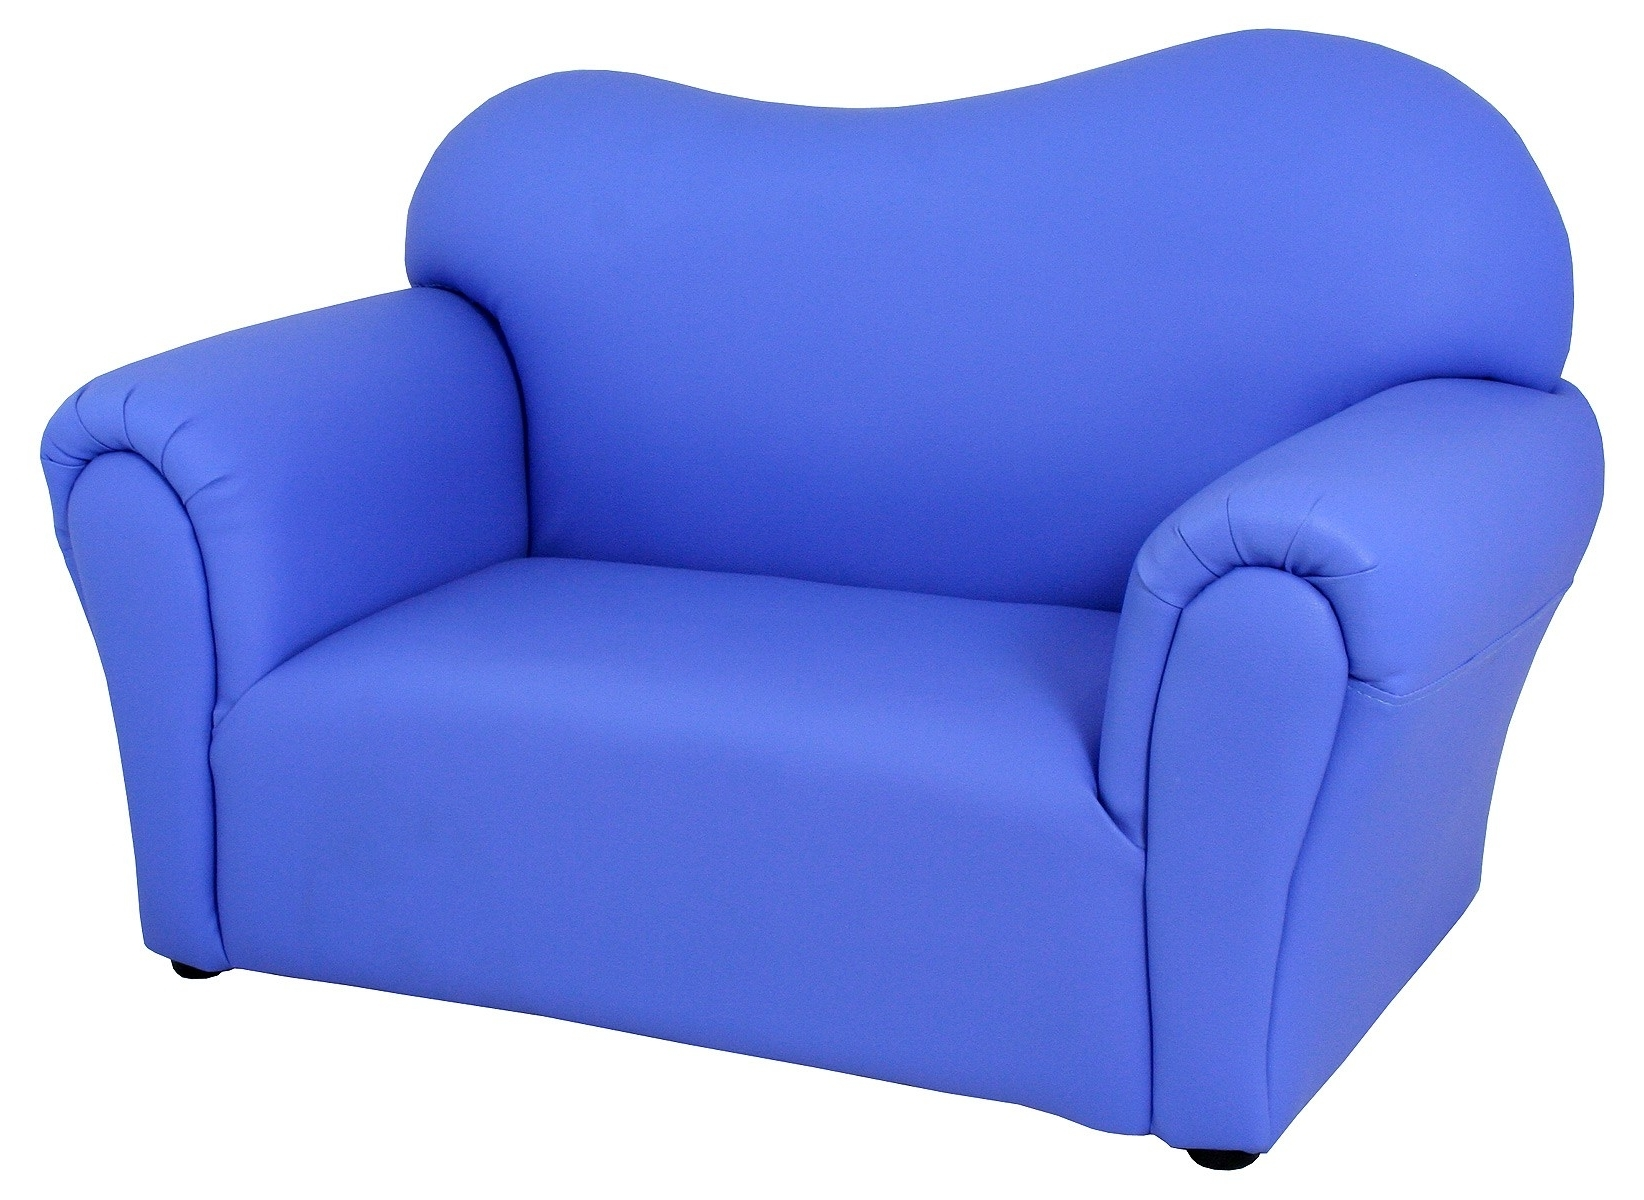 Recent Mini Sofas Pertaining To Childrens Blue Mini Sofa – Be Fabulous! (View 6 of 15)